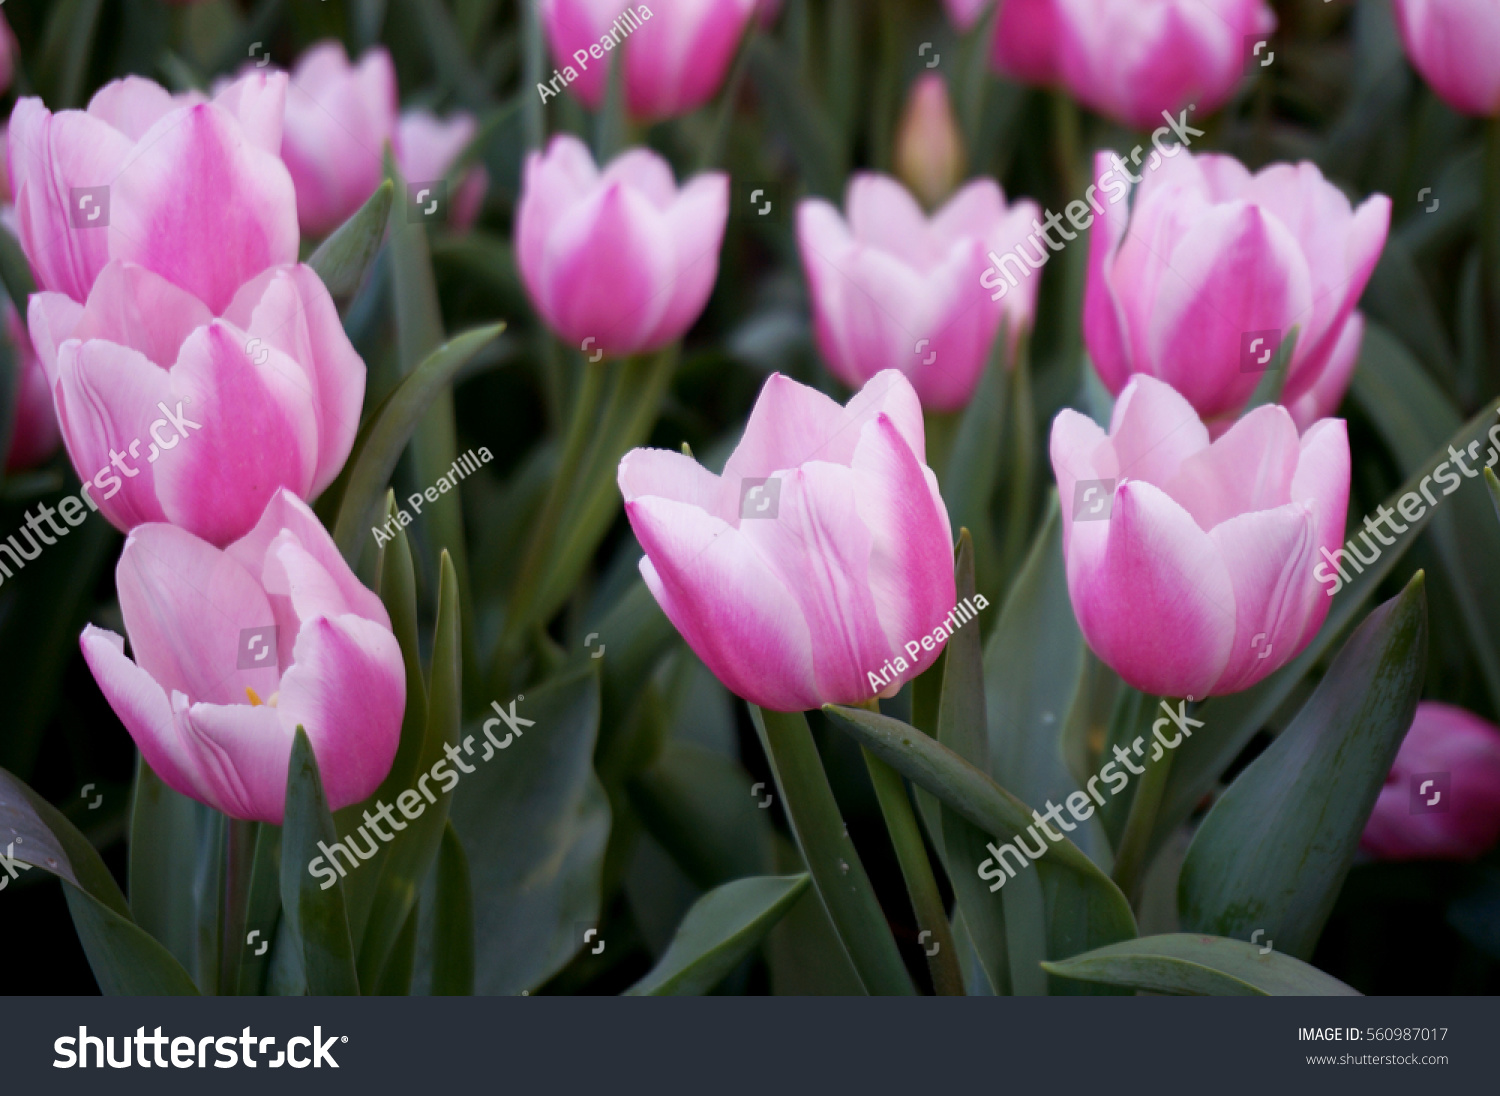 Background Of Group Of Pink Tulip Flowers Field And Green Leaves